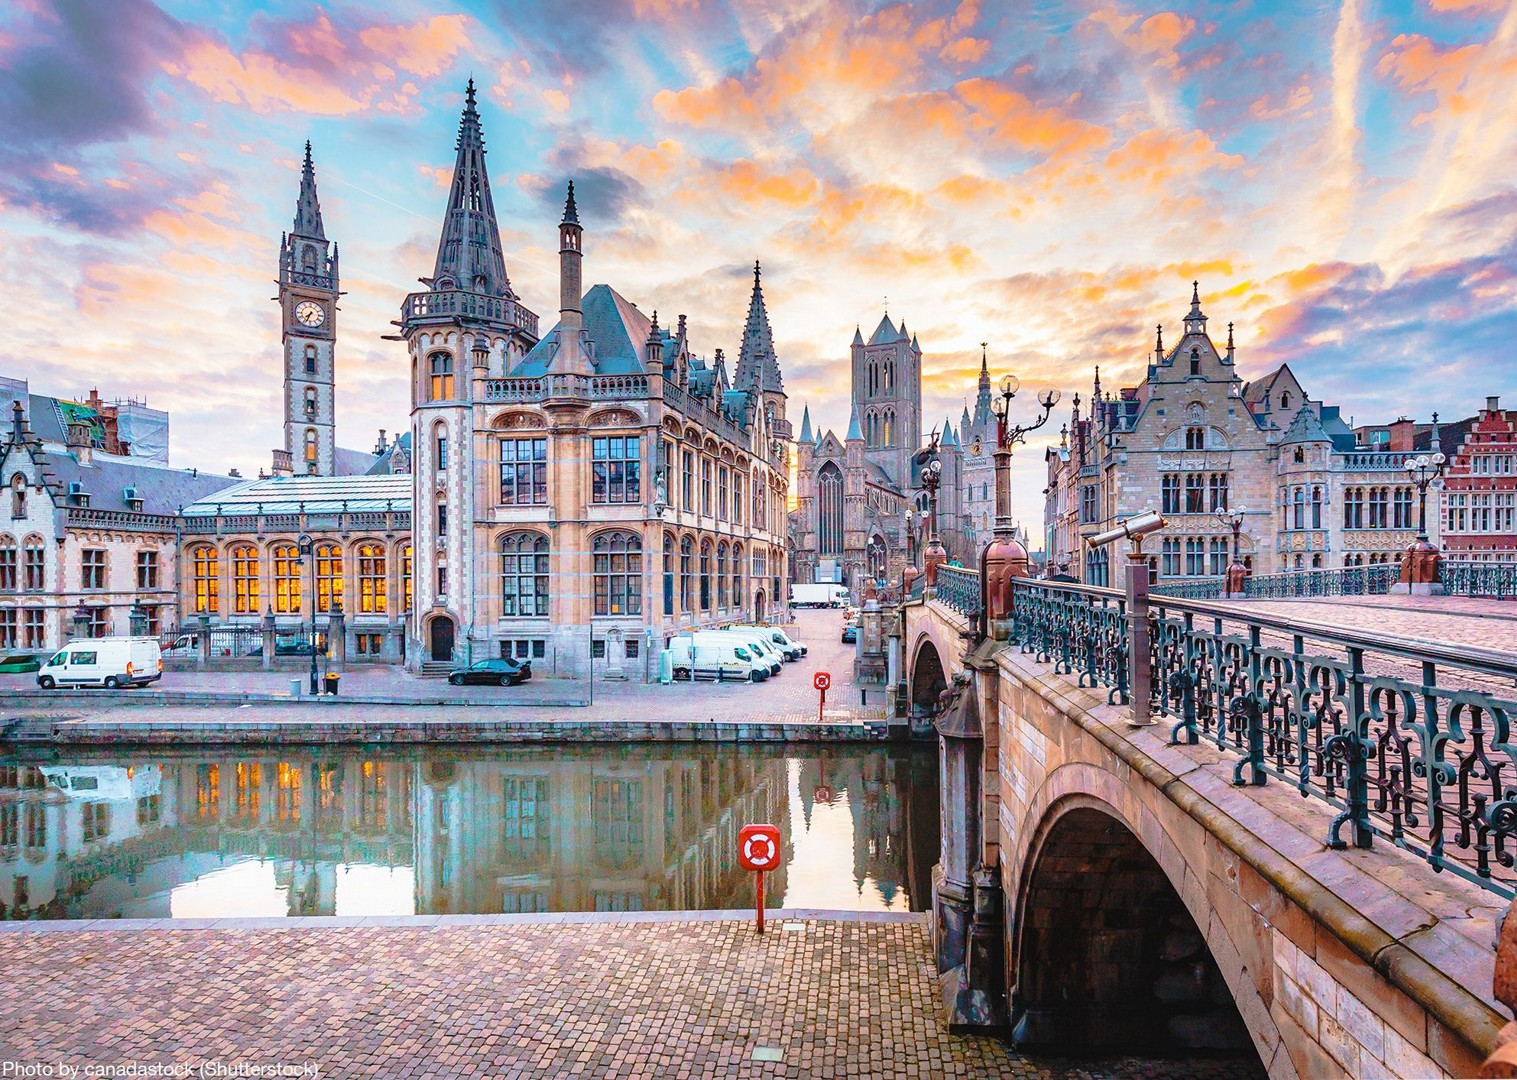 bike-and-boat-holiday-saint-nicholas-church-ghent-bruges-to-amsterdam.jpg - Holland and Belgium - Bruges to Amsterdam - Premium Bike and Barge Holiday - Leisure Cycling